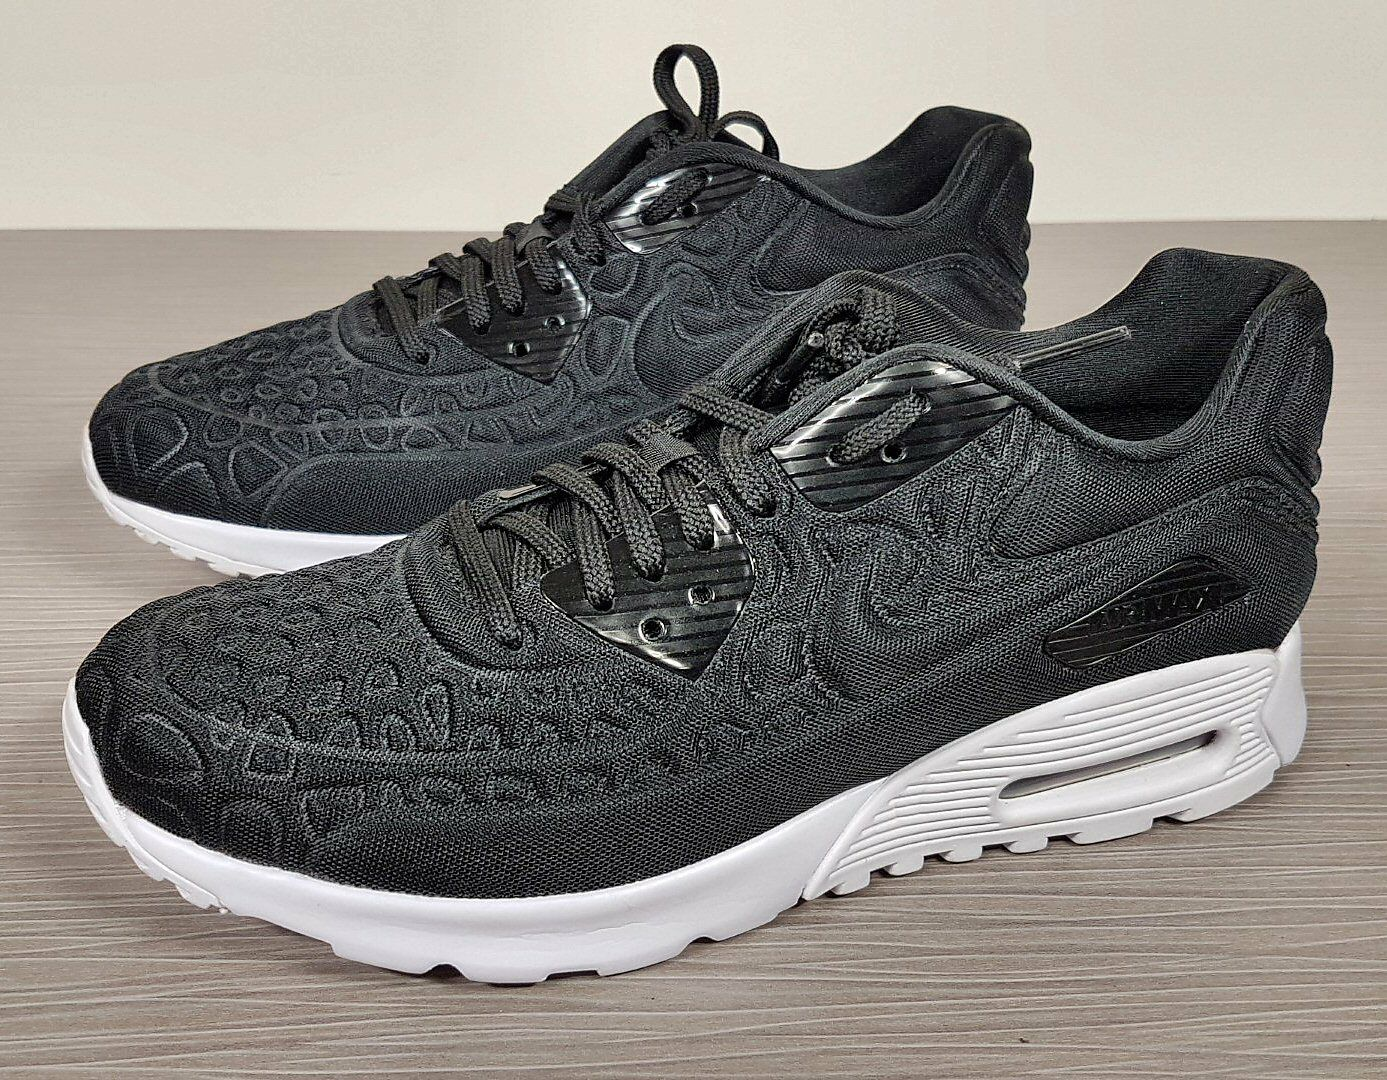 new concept 97303 39117 ... Nike  Air Max 1 Ultra Plush  Plush  Plush  Sneaker 844882-001 ...